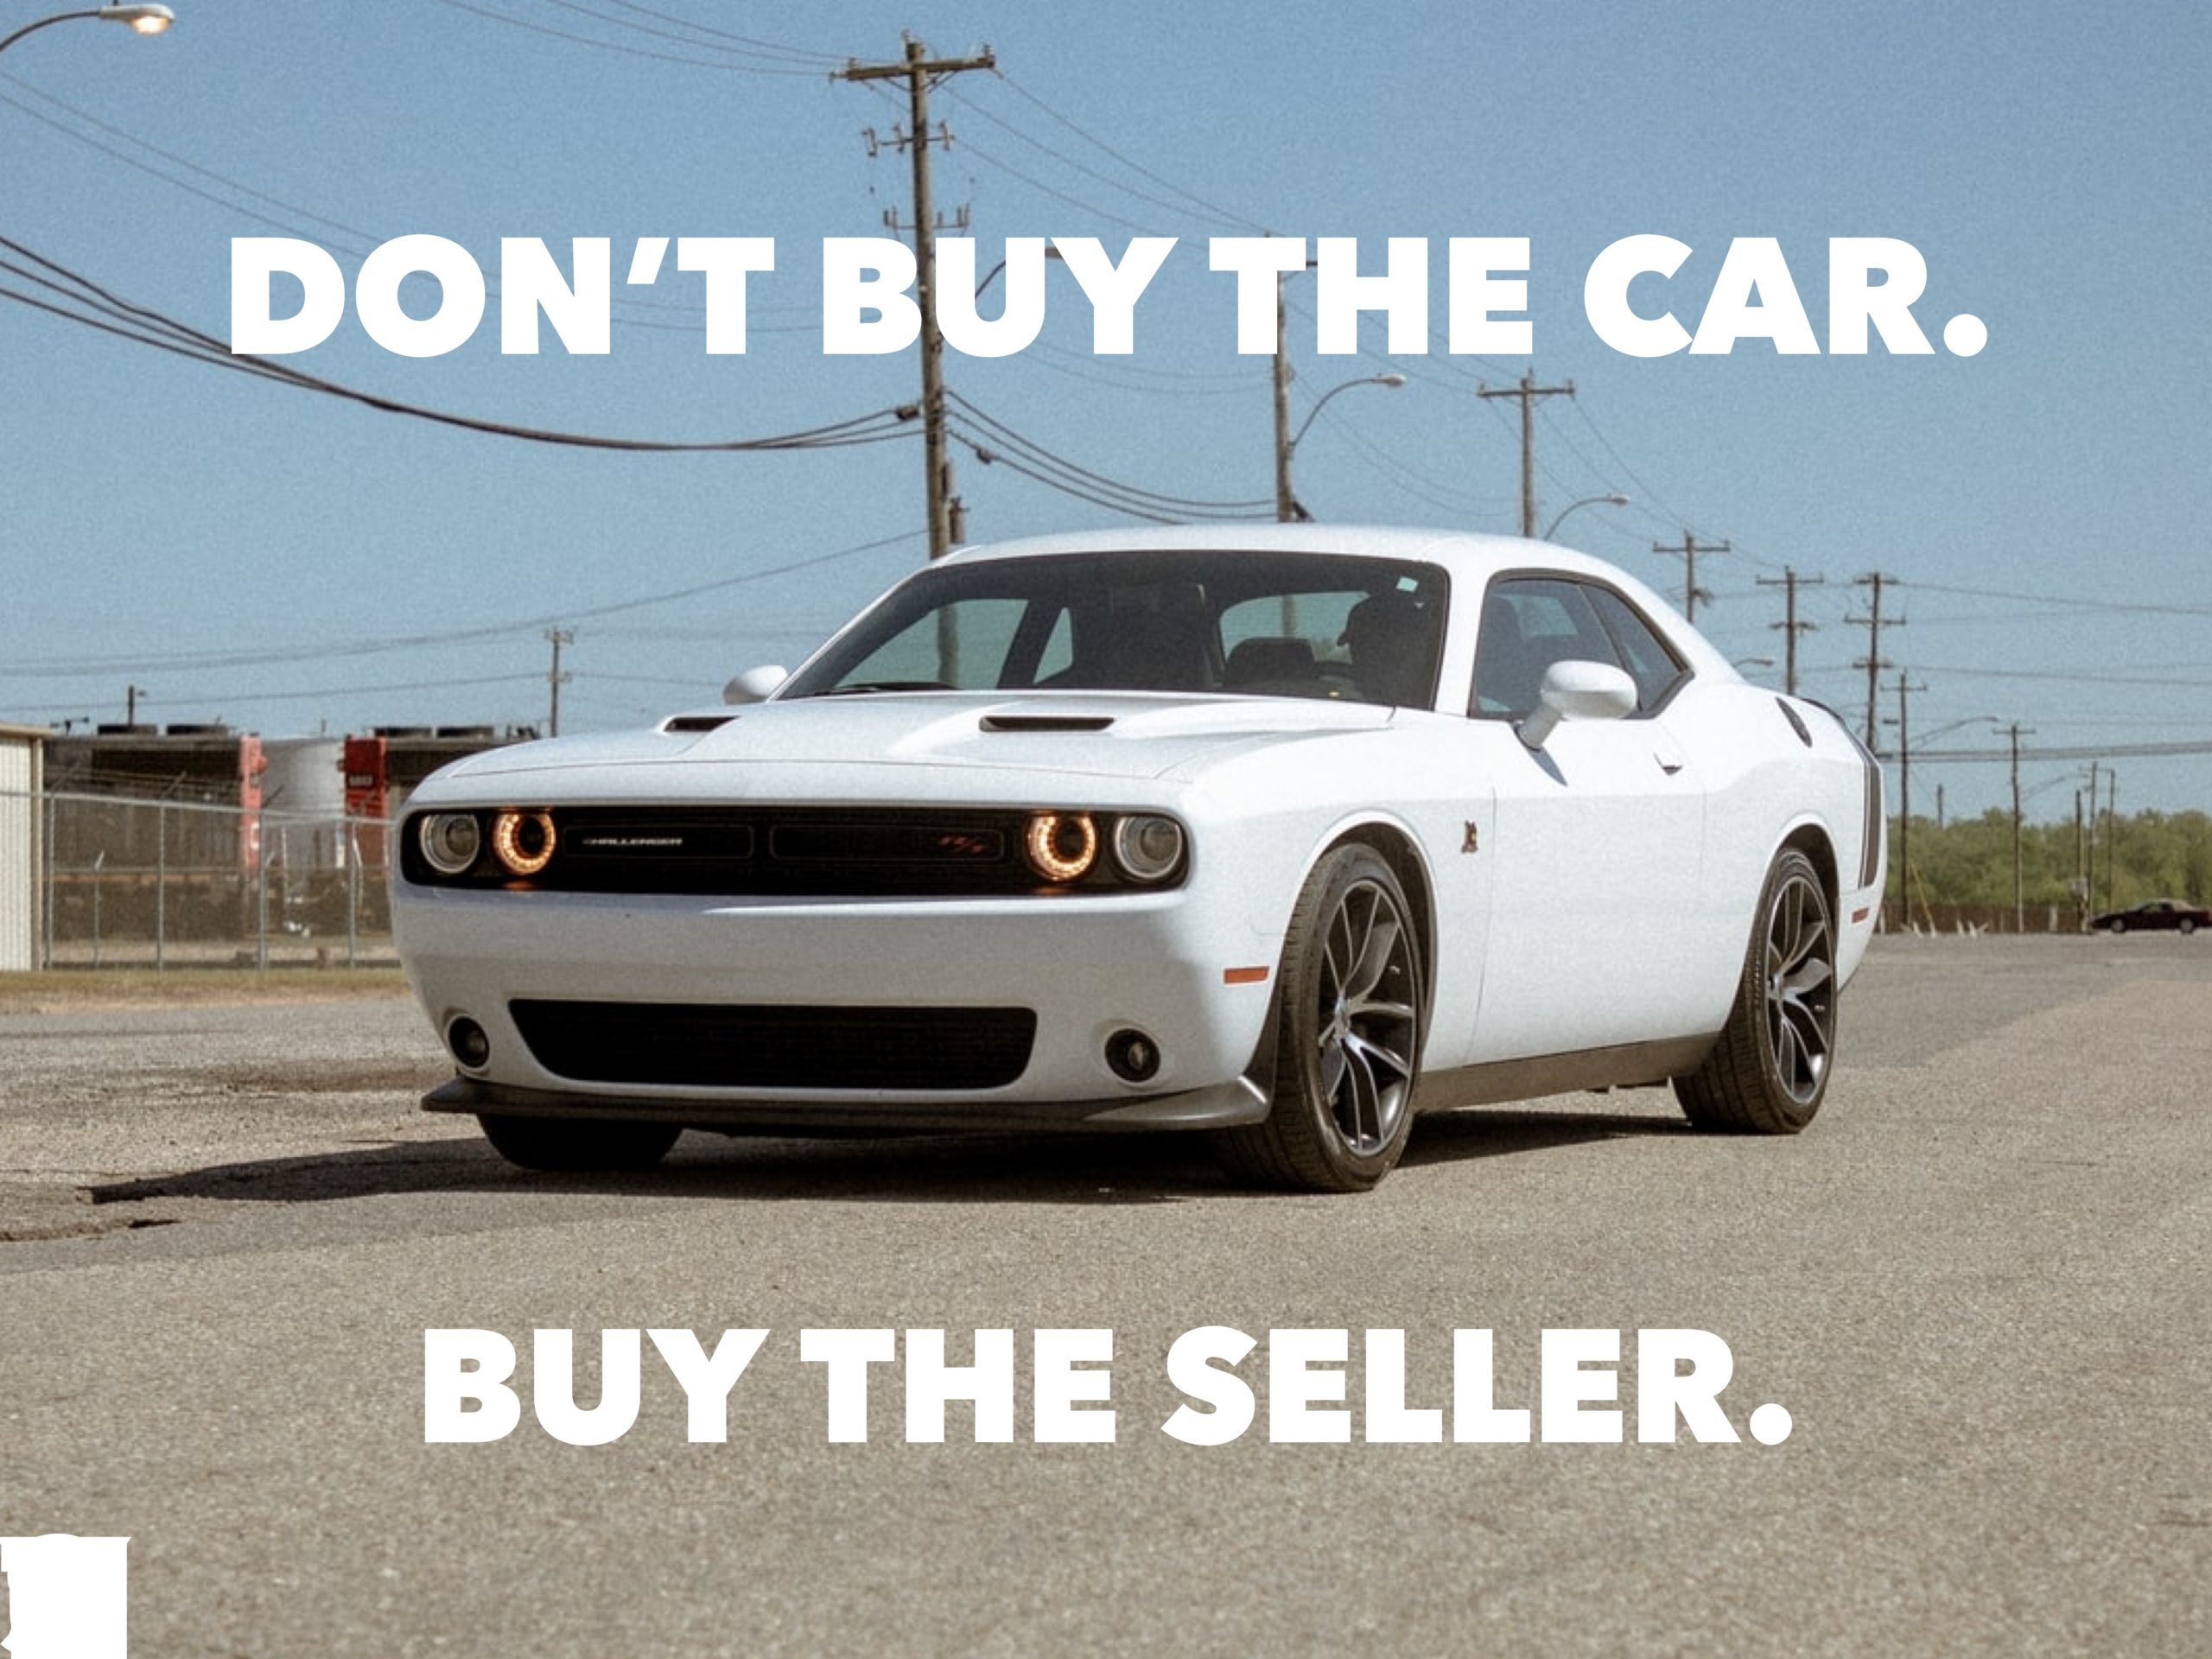 Don't Buy The Car. Buy The Seller.